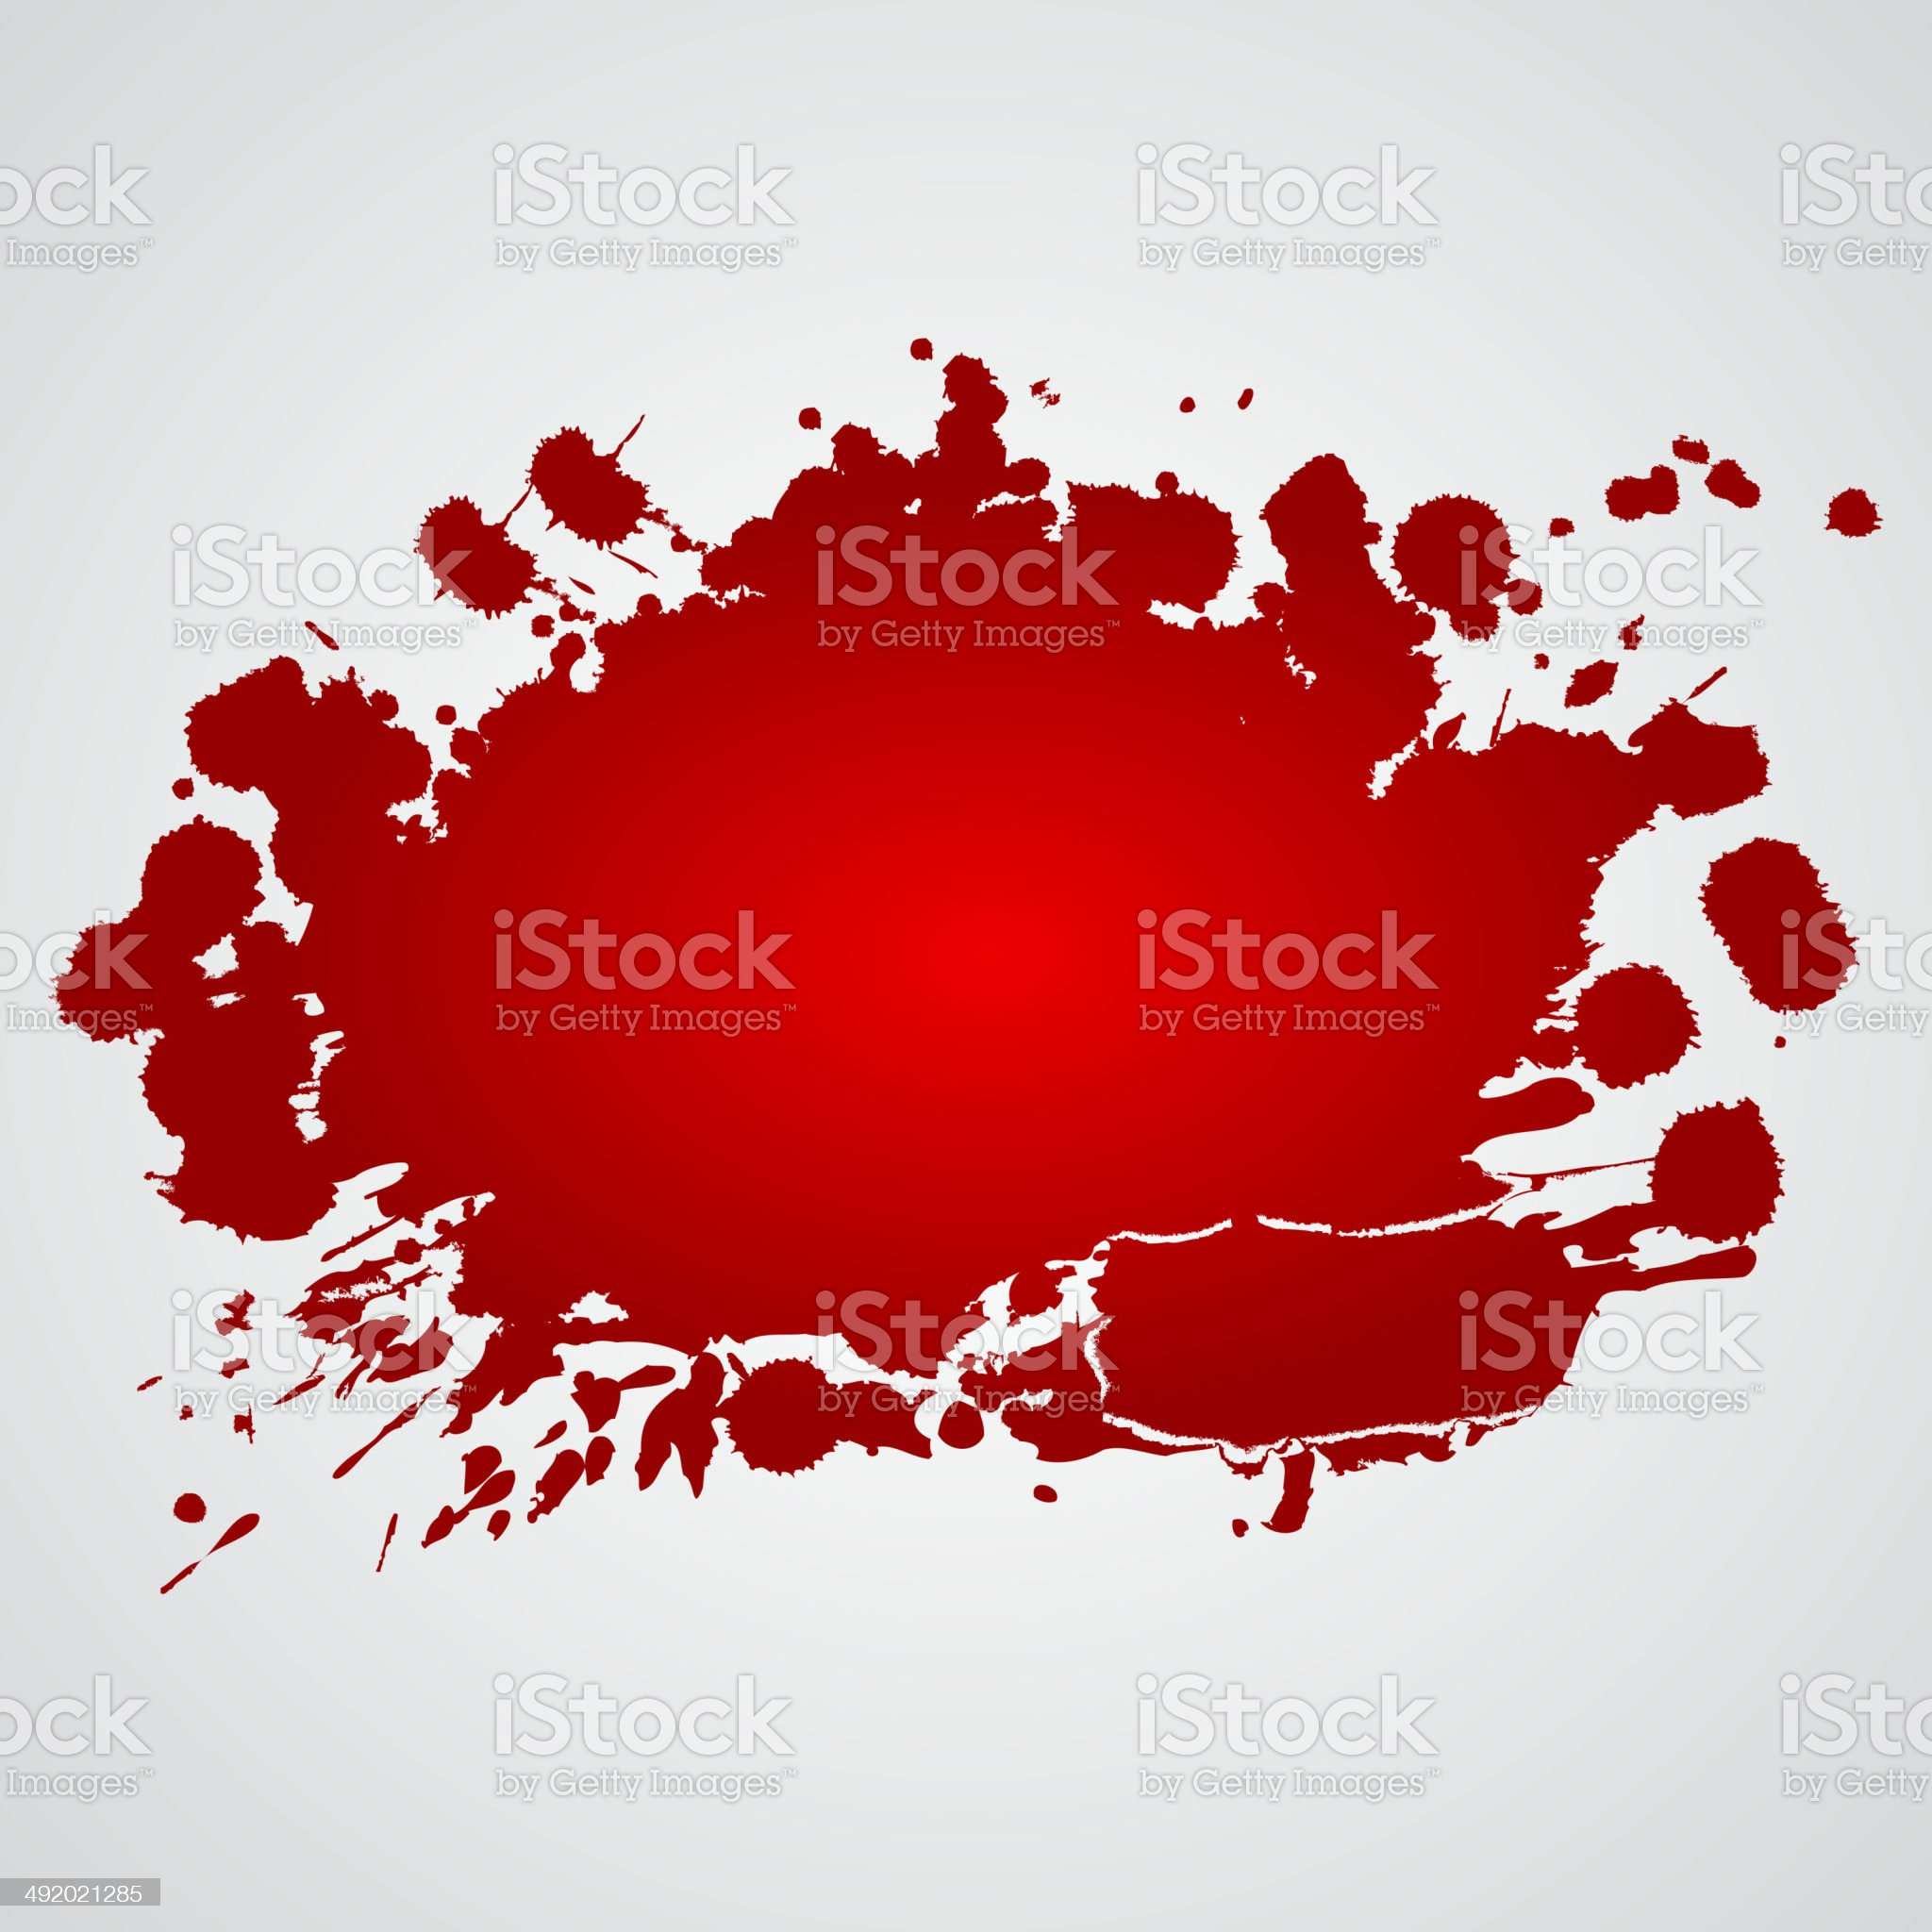 Background with red splashes royalty-free stock vector art